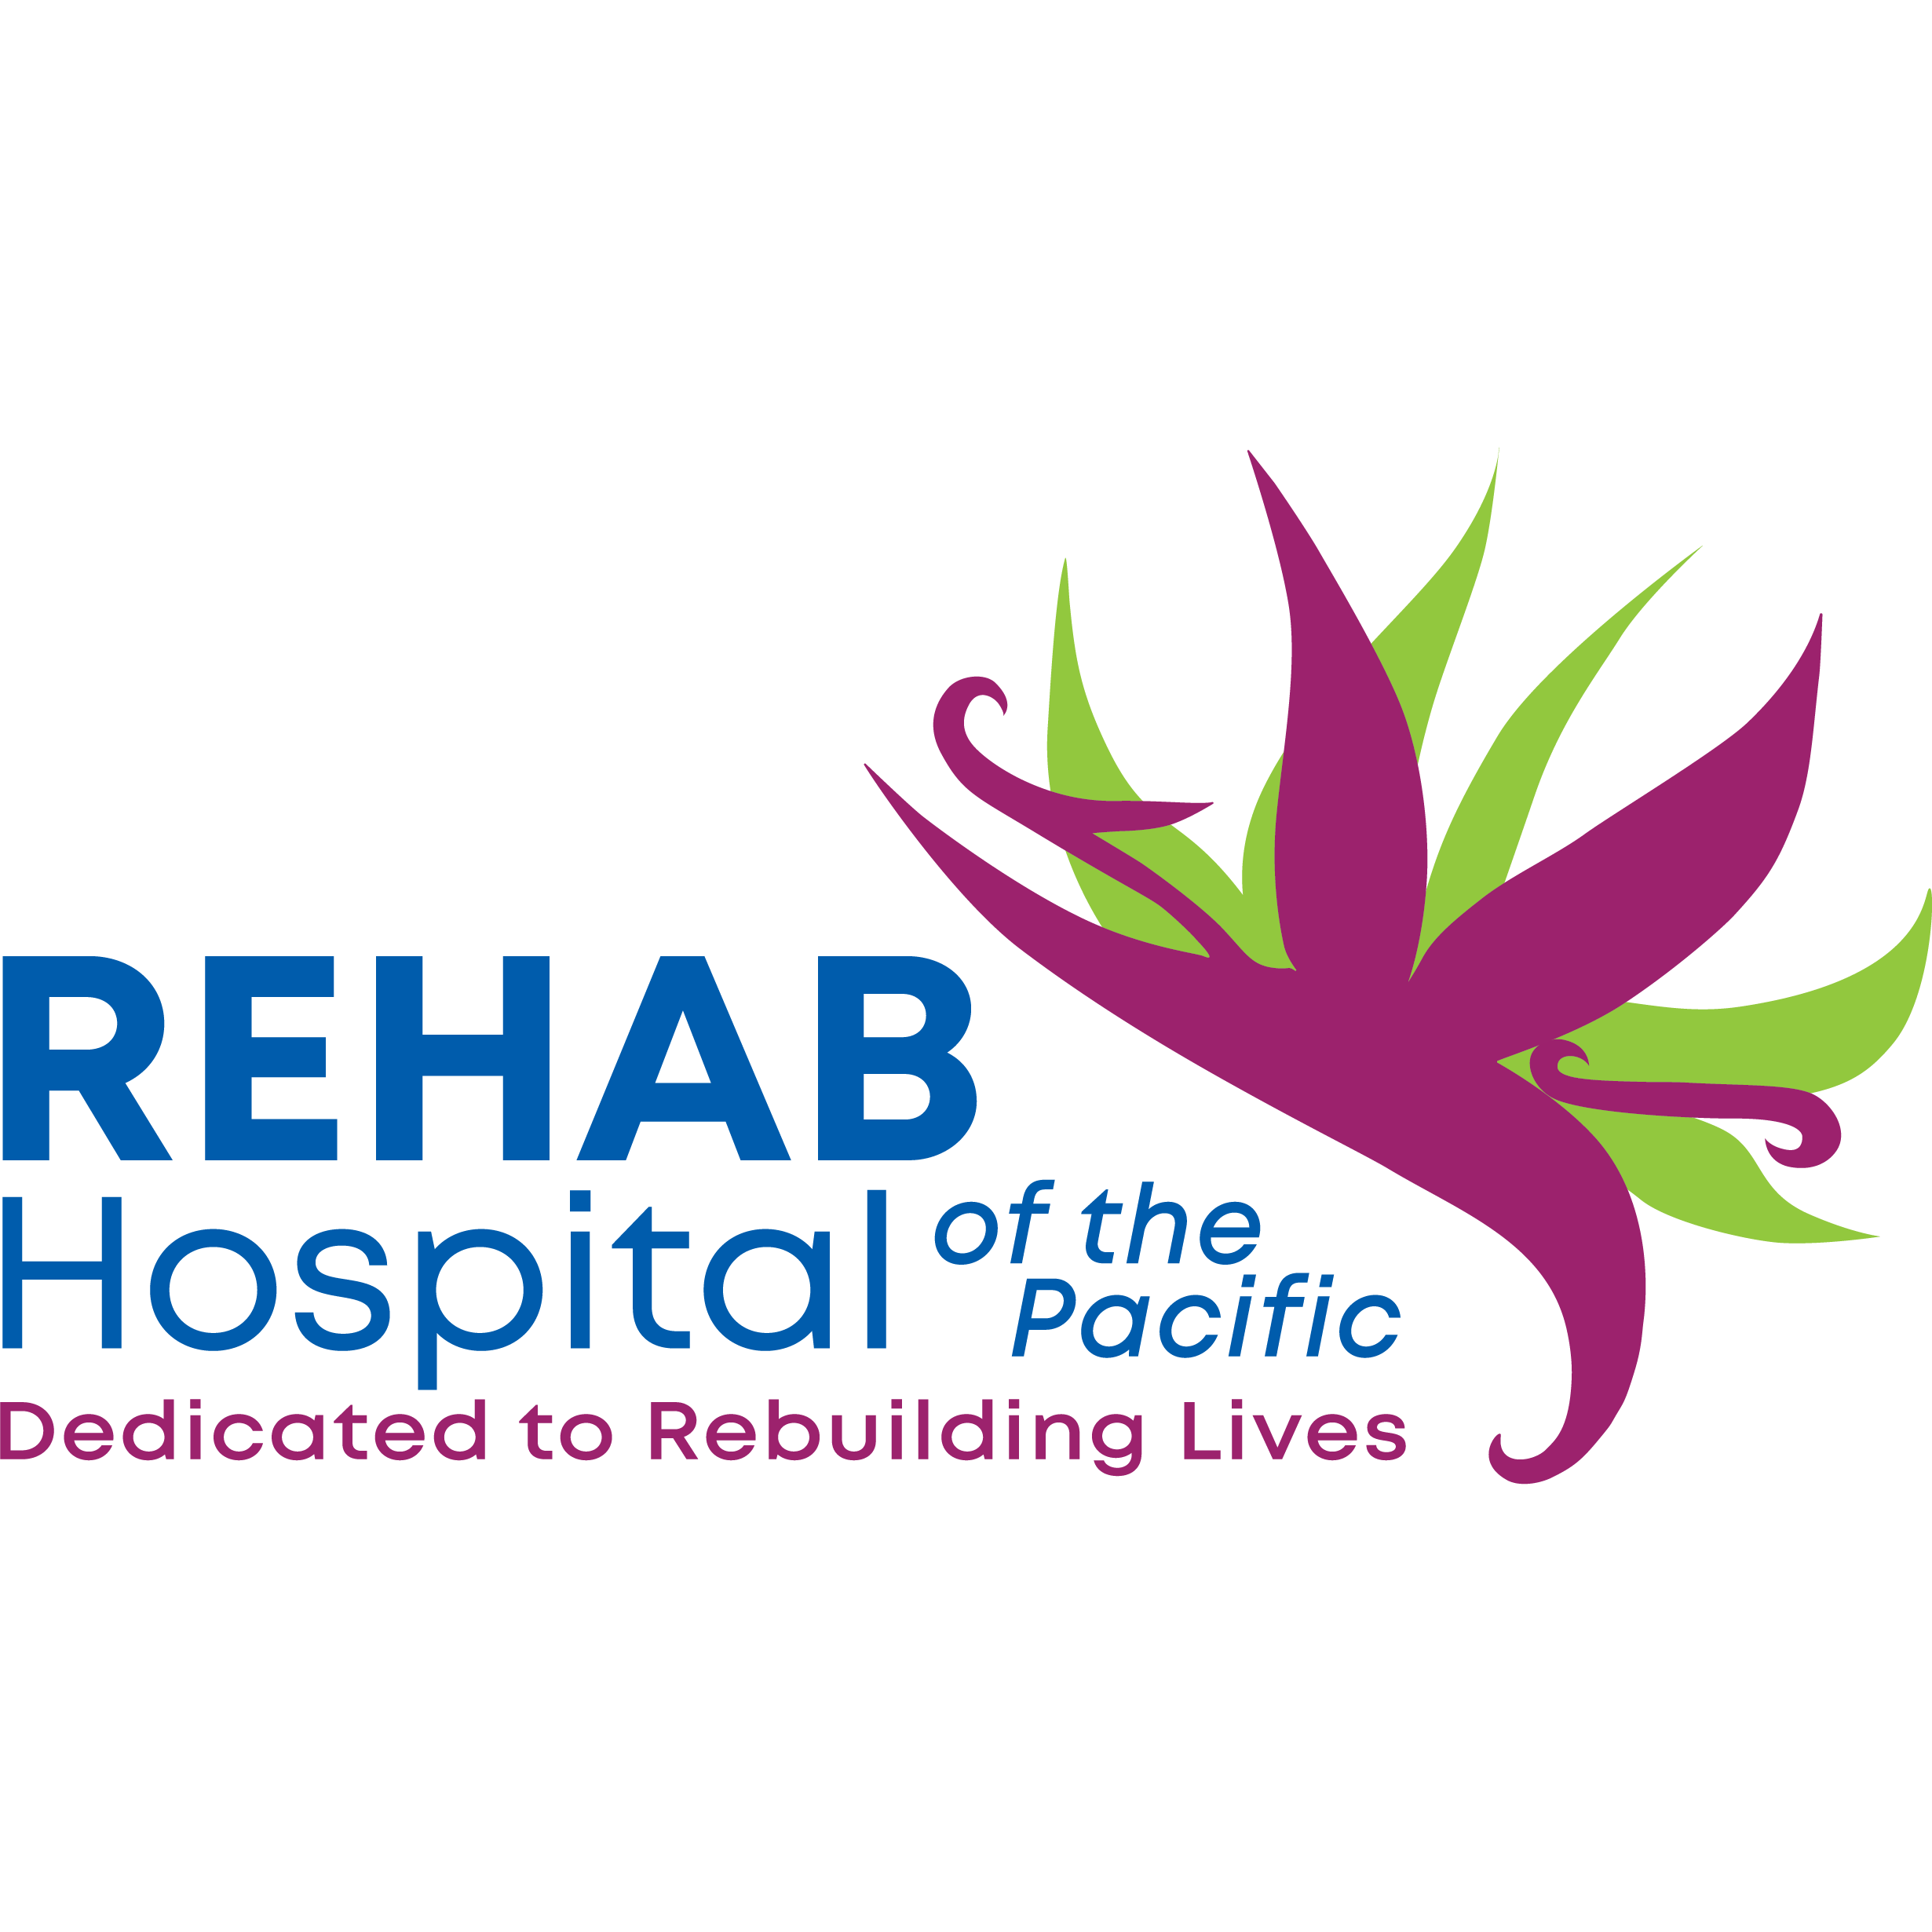 REHAB Hospital of the Pacific